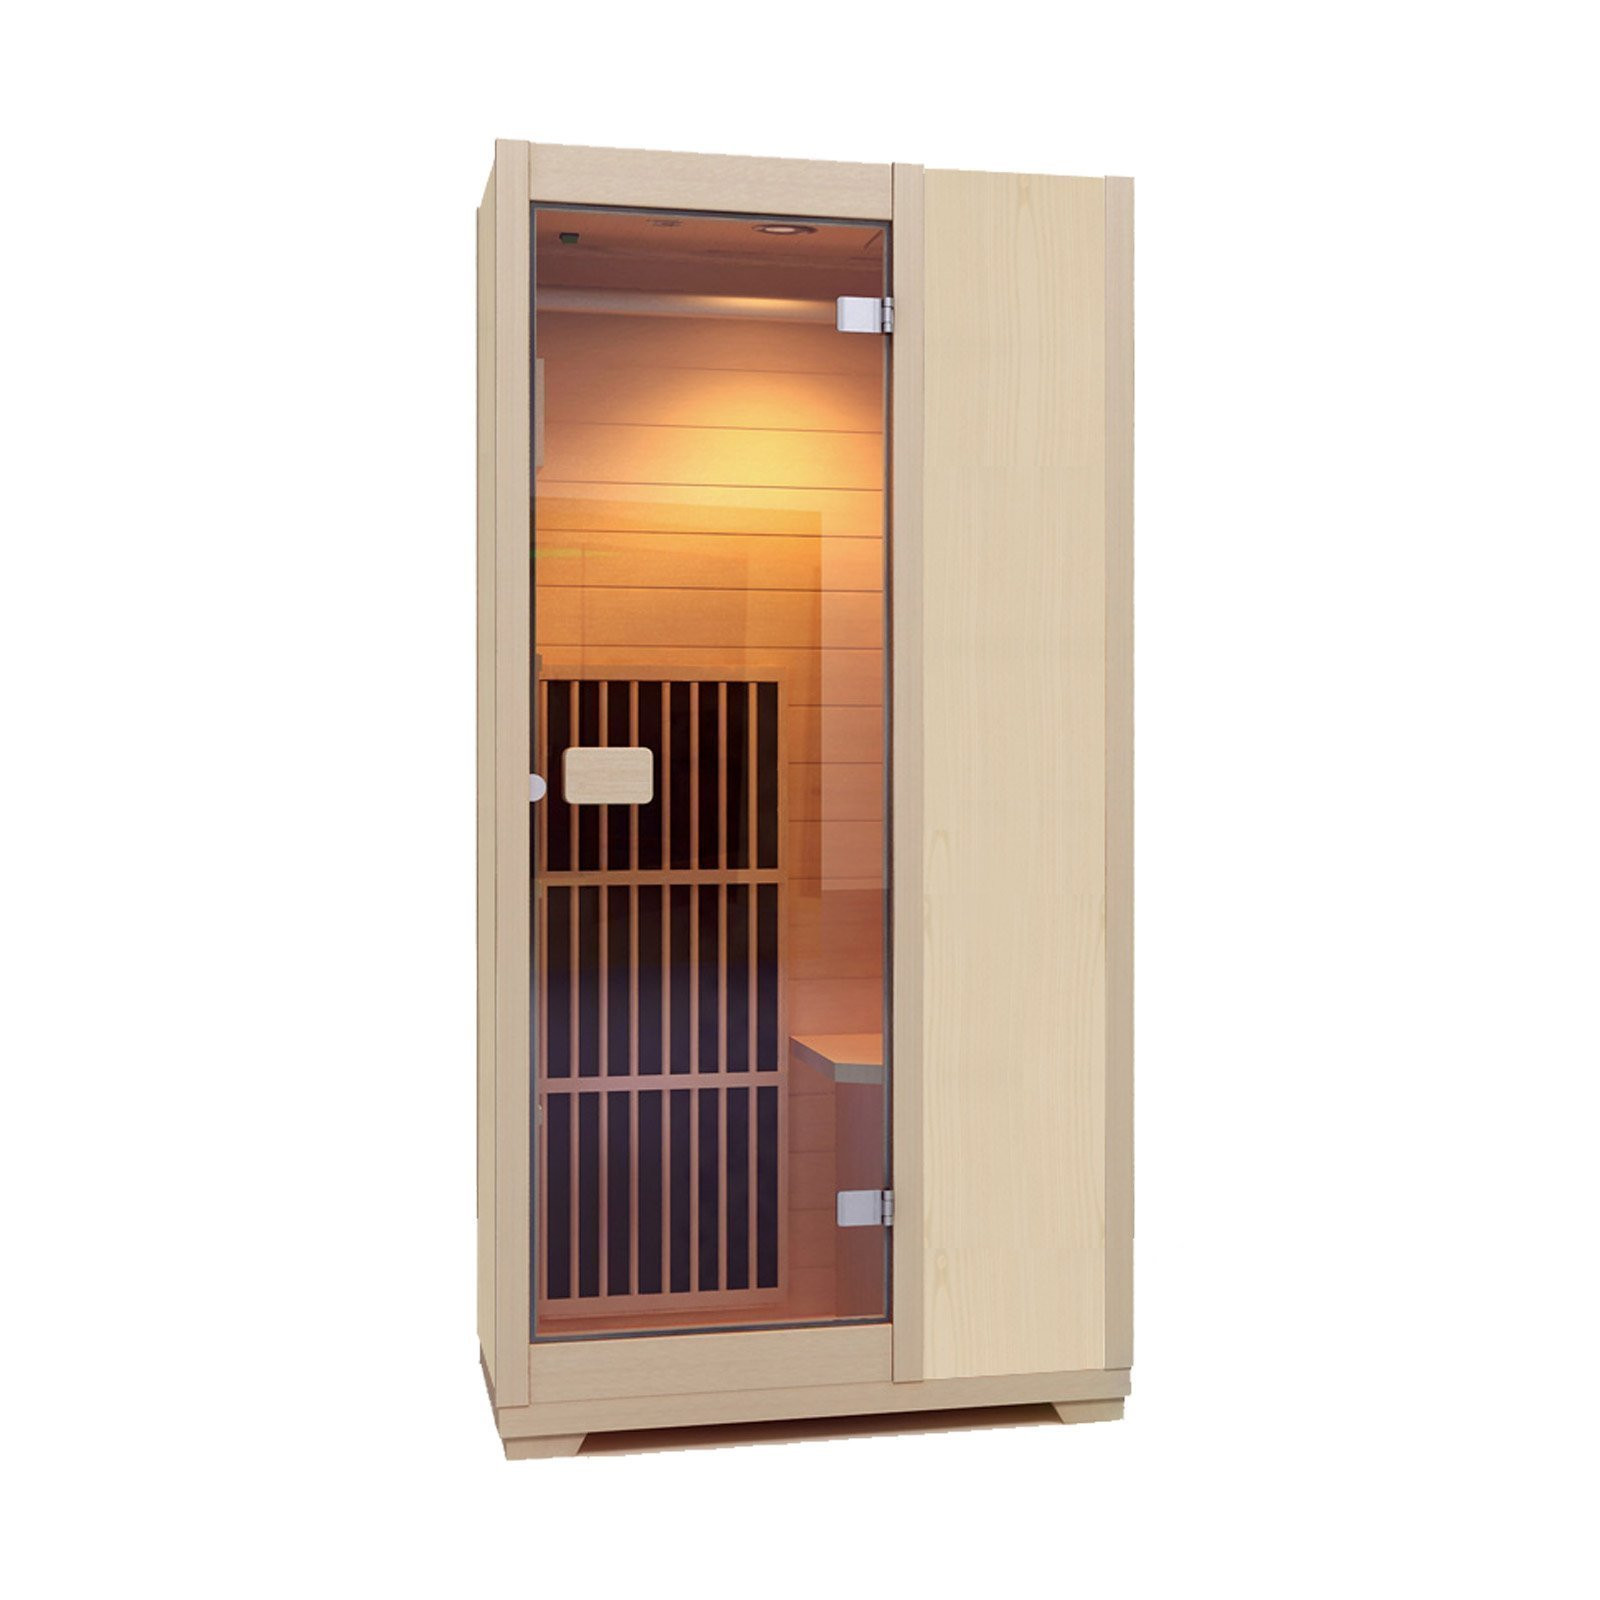 Zen 'Brighton' Infrared Sauna ZIV015 - Natural